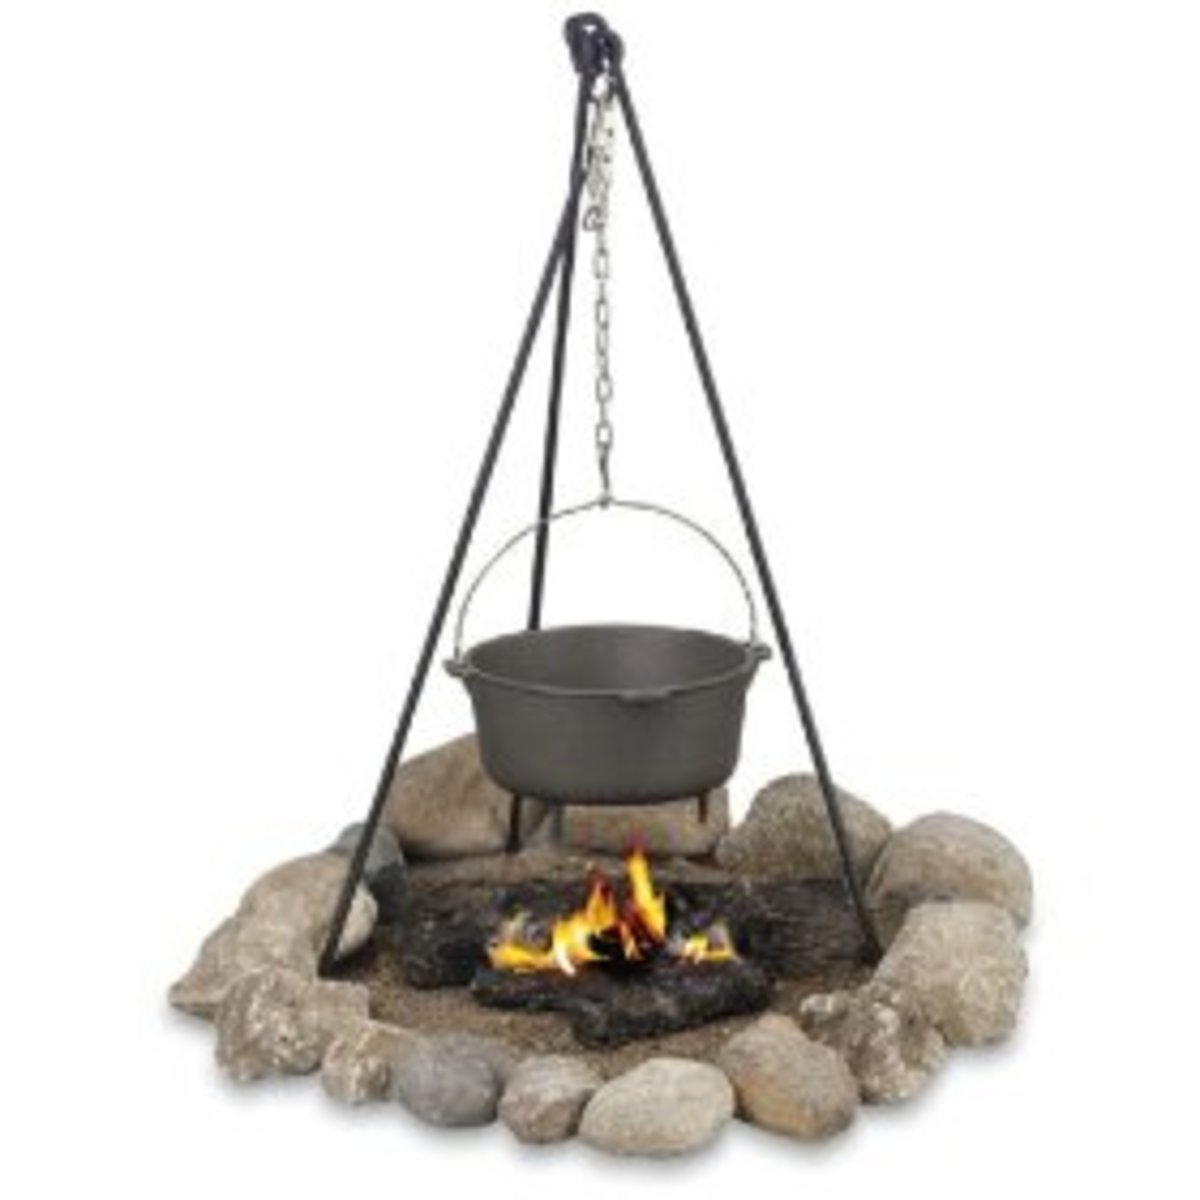 campfire cooking with a campfire tripod and a cast iron Dutch oven